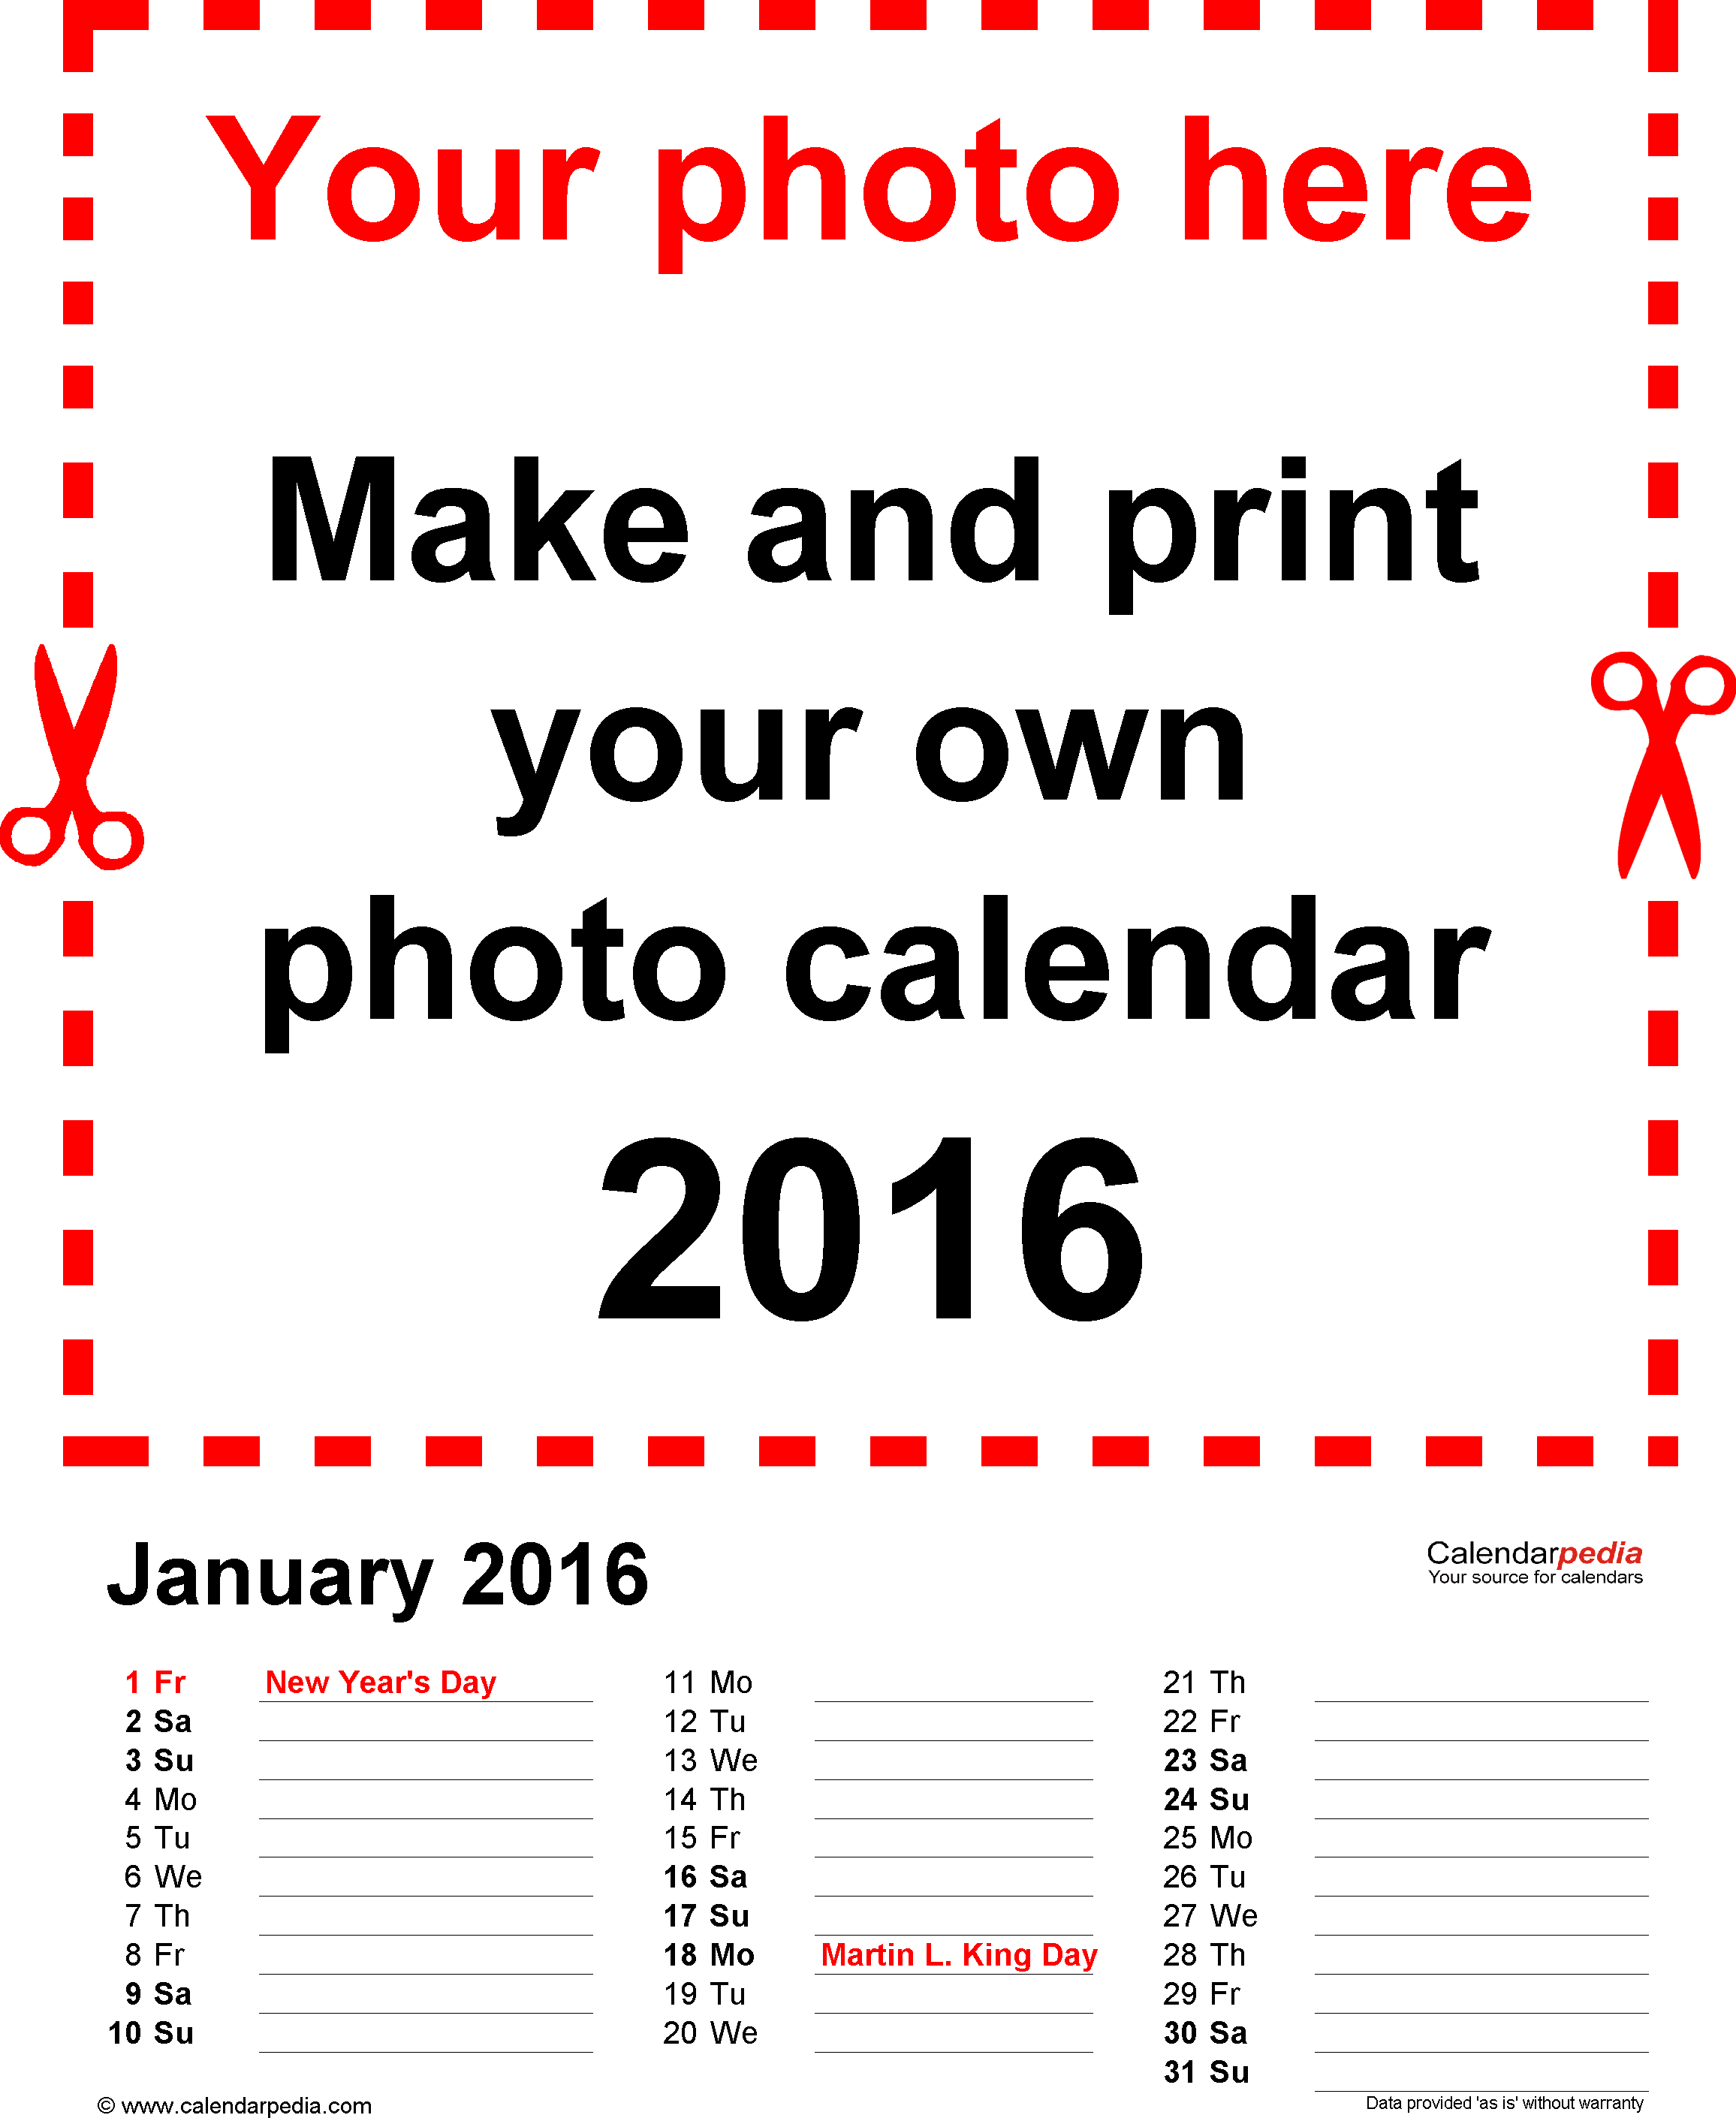 Download Template 3: Photo calendar 2016 for Excel, 12 pages, portrait format, days in three columns